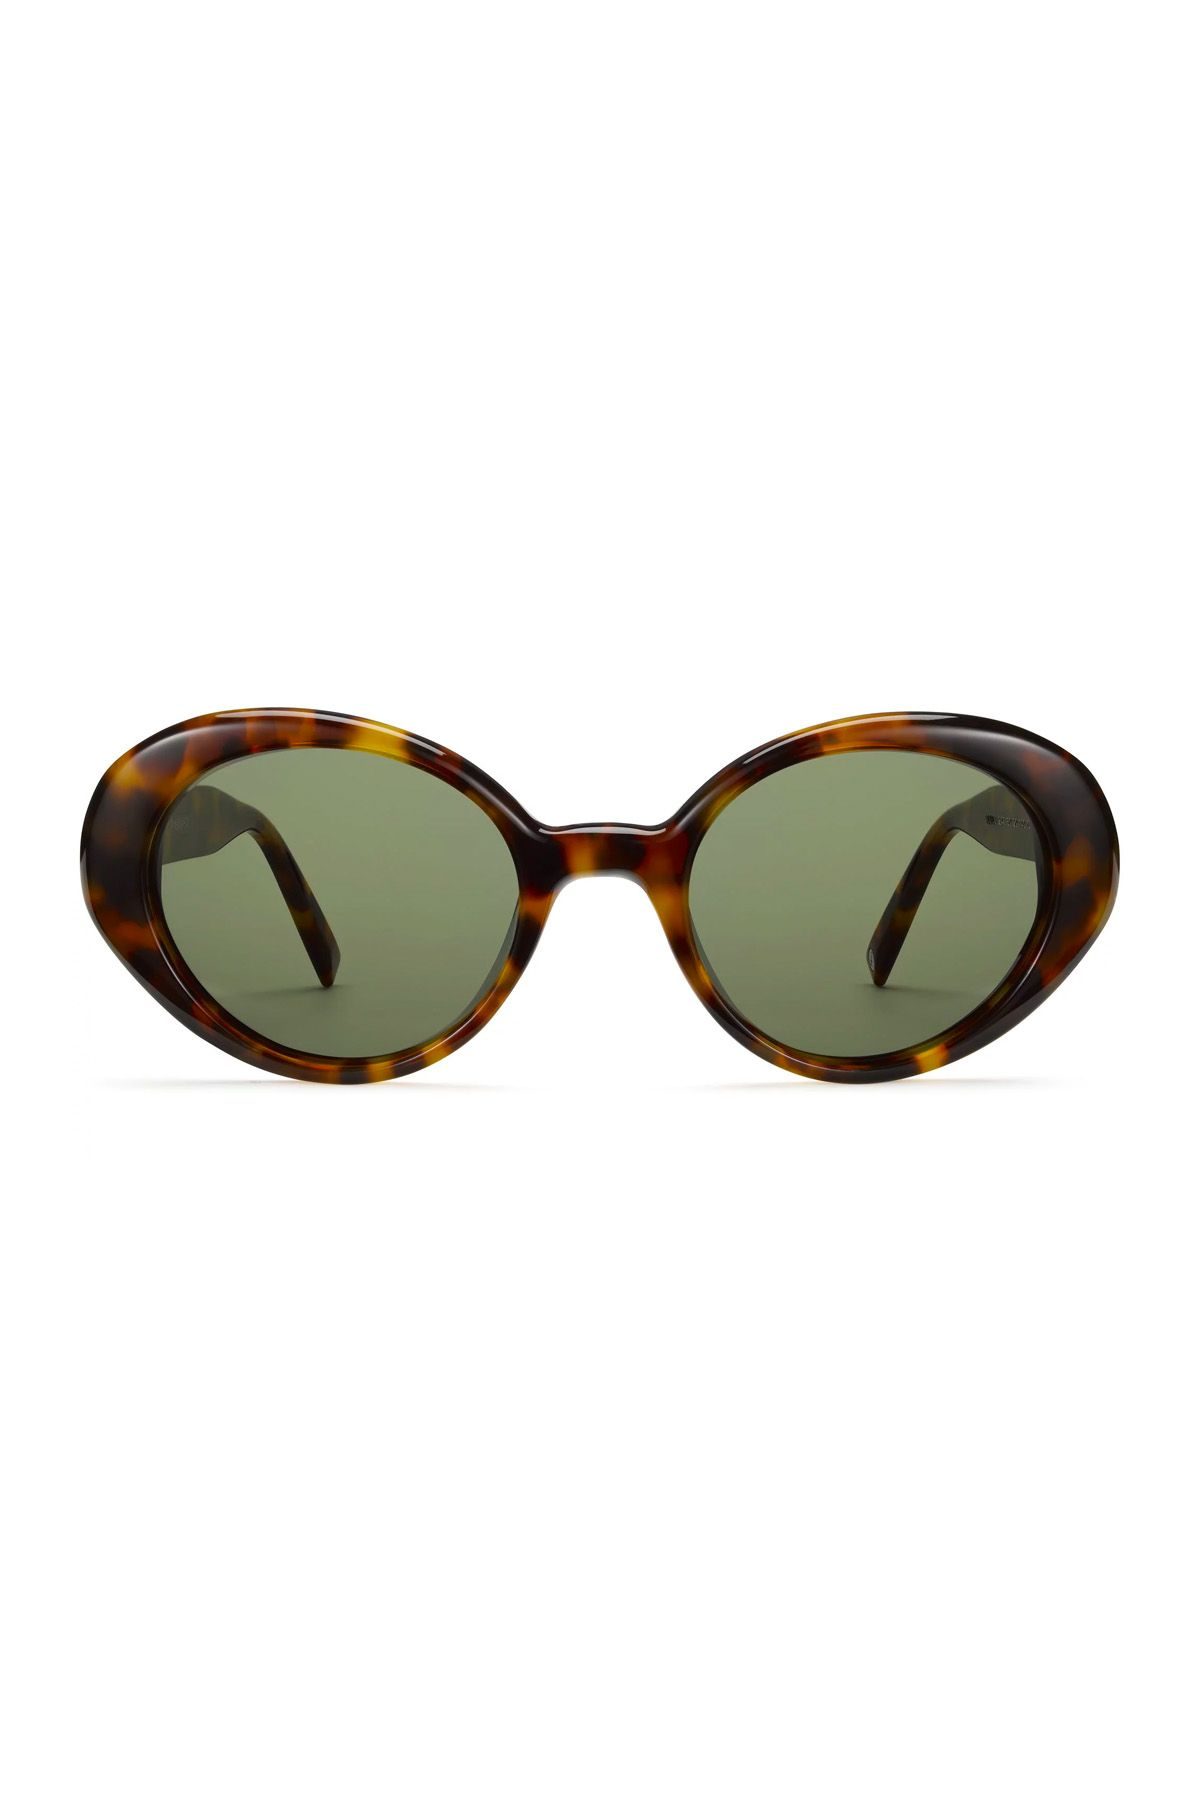 gifts that give back warby parker